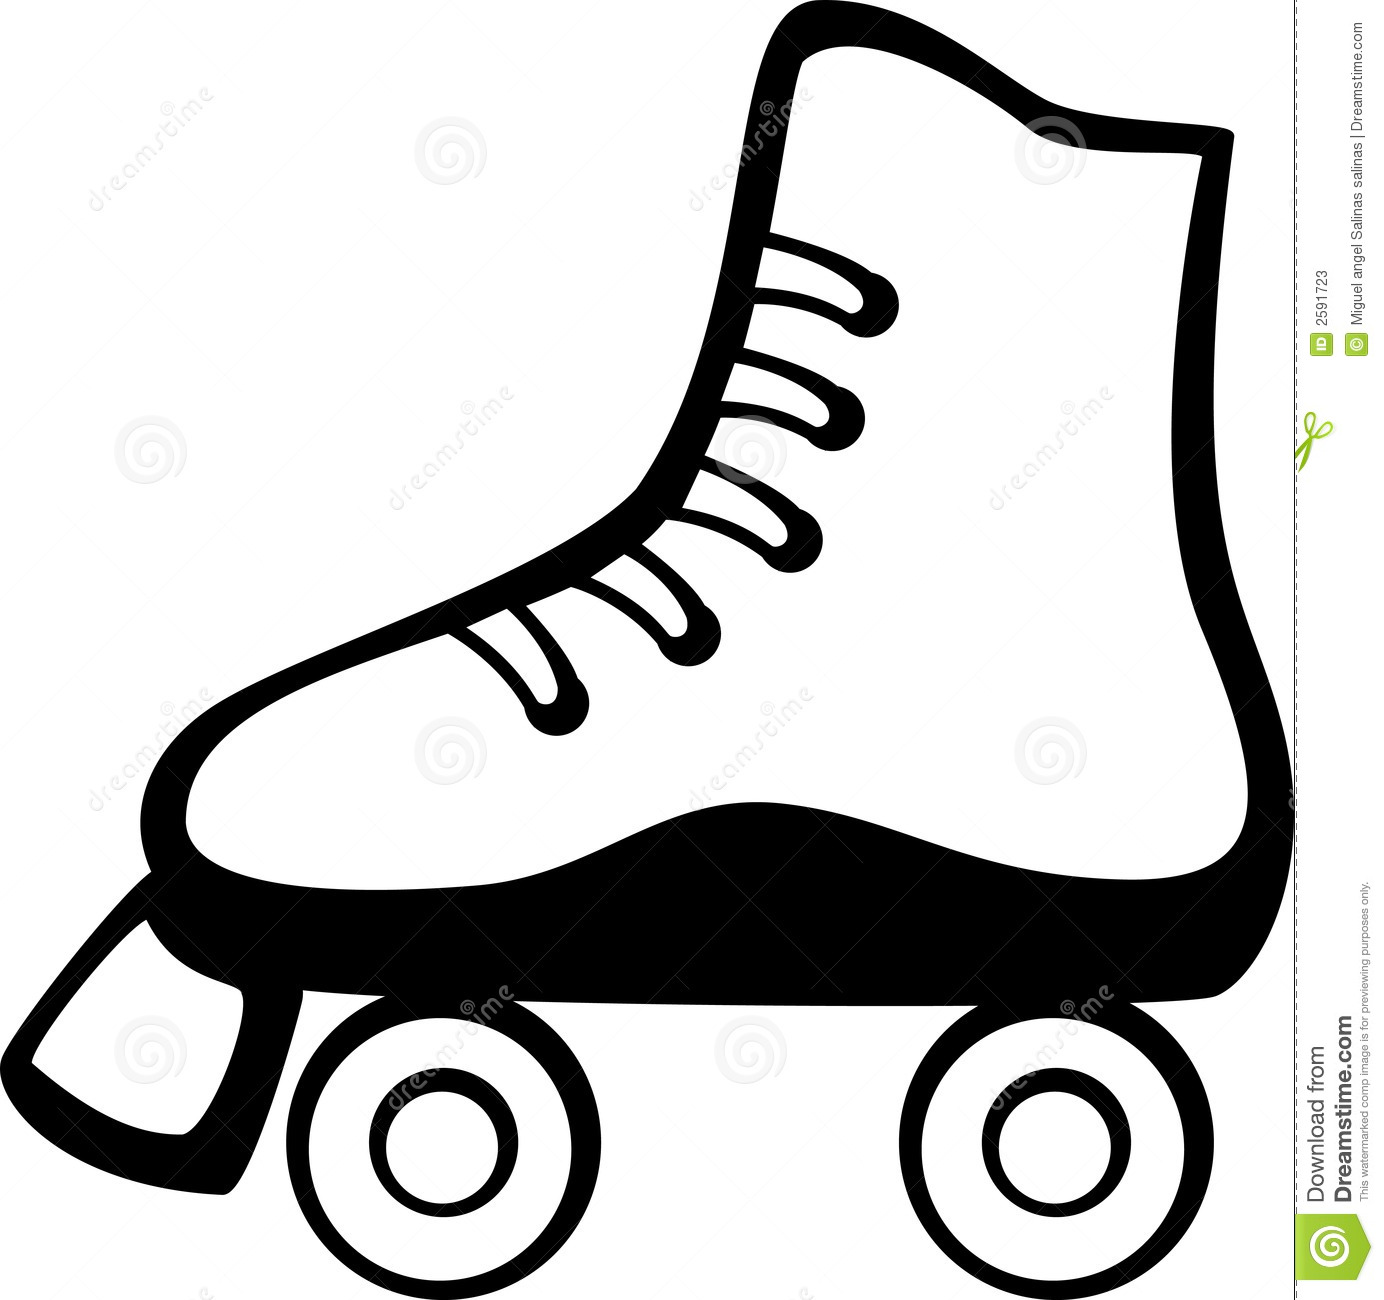 1384x1300 Roller Skate Clip Art Free Many Interesting Cliparts